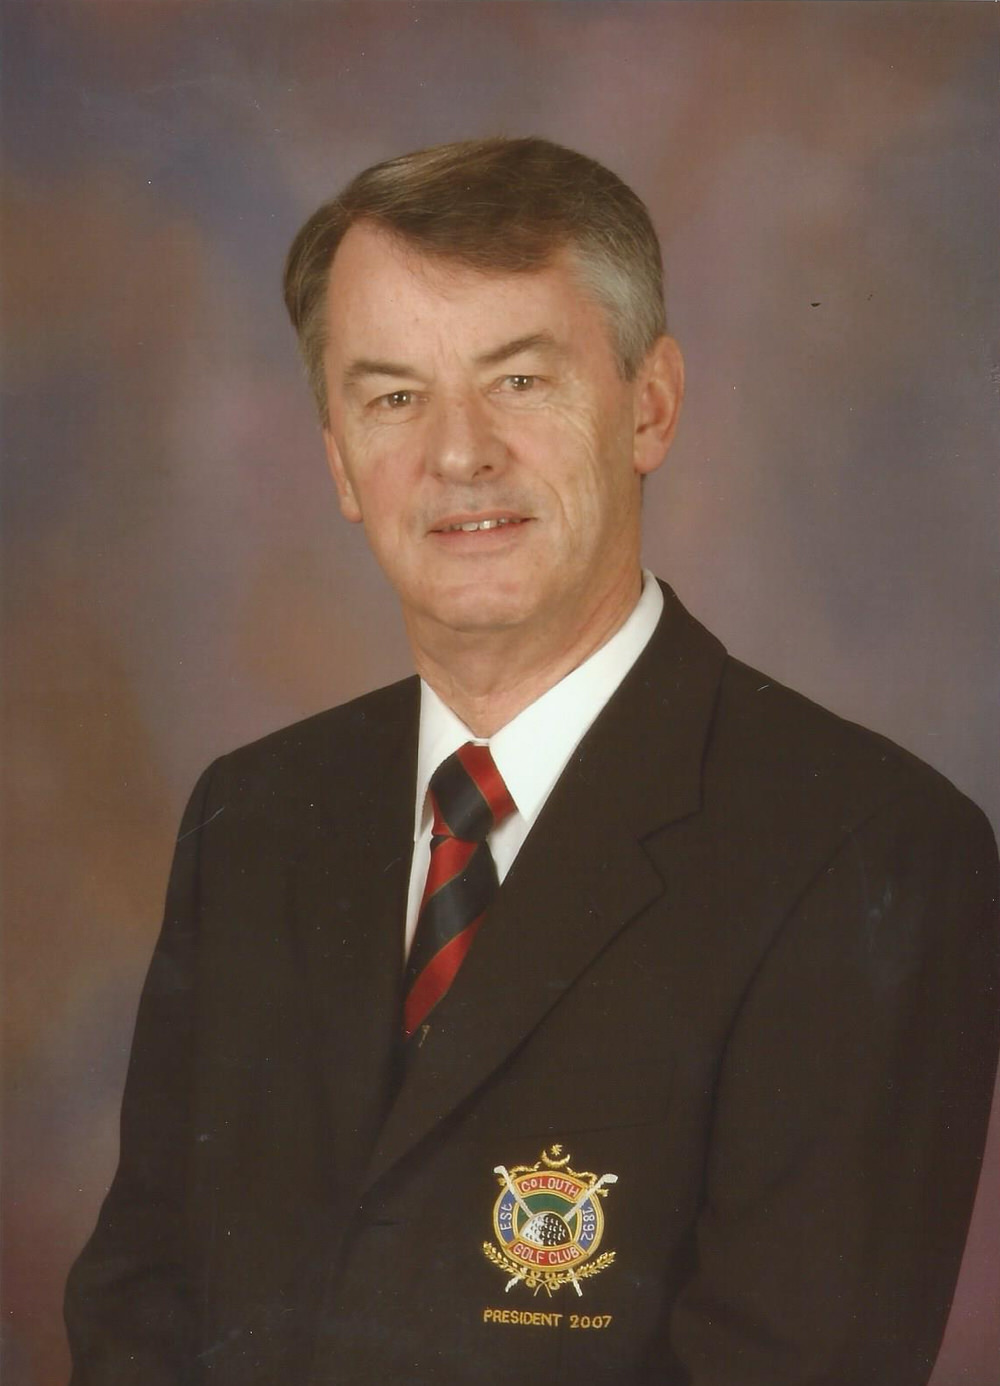 Mark Gannon during his Presidency of County Louth Golf Club in 2007